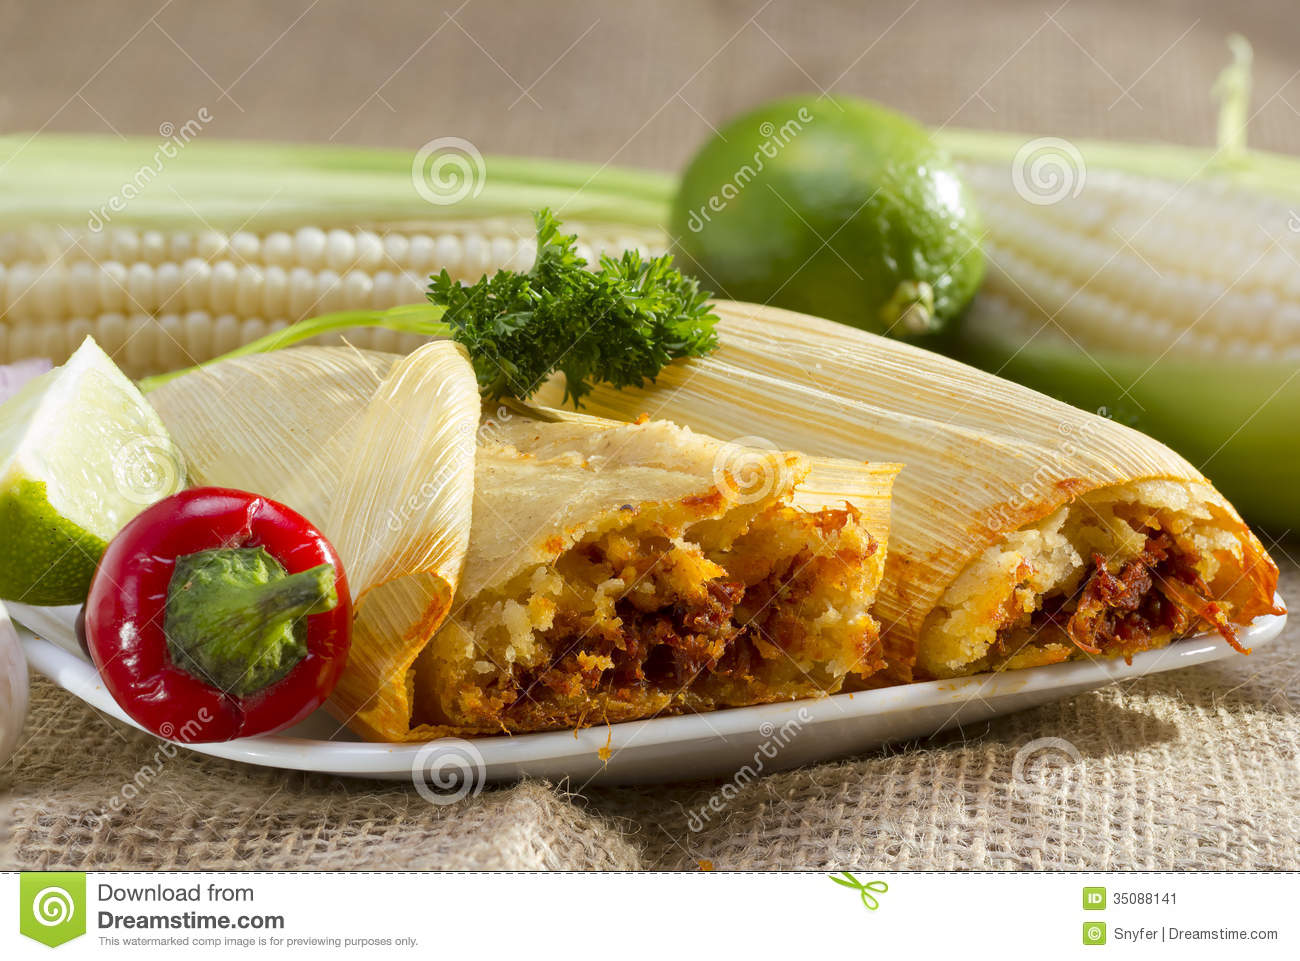 Mexican Food Wrapped In A Corn Husk